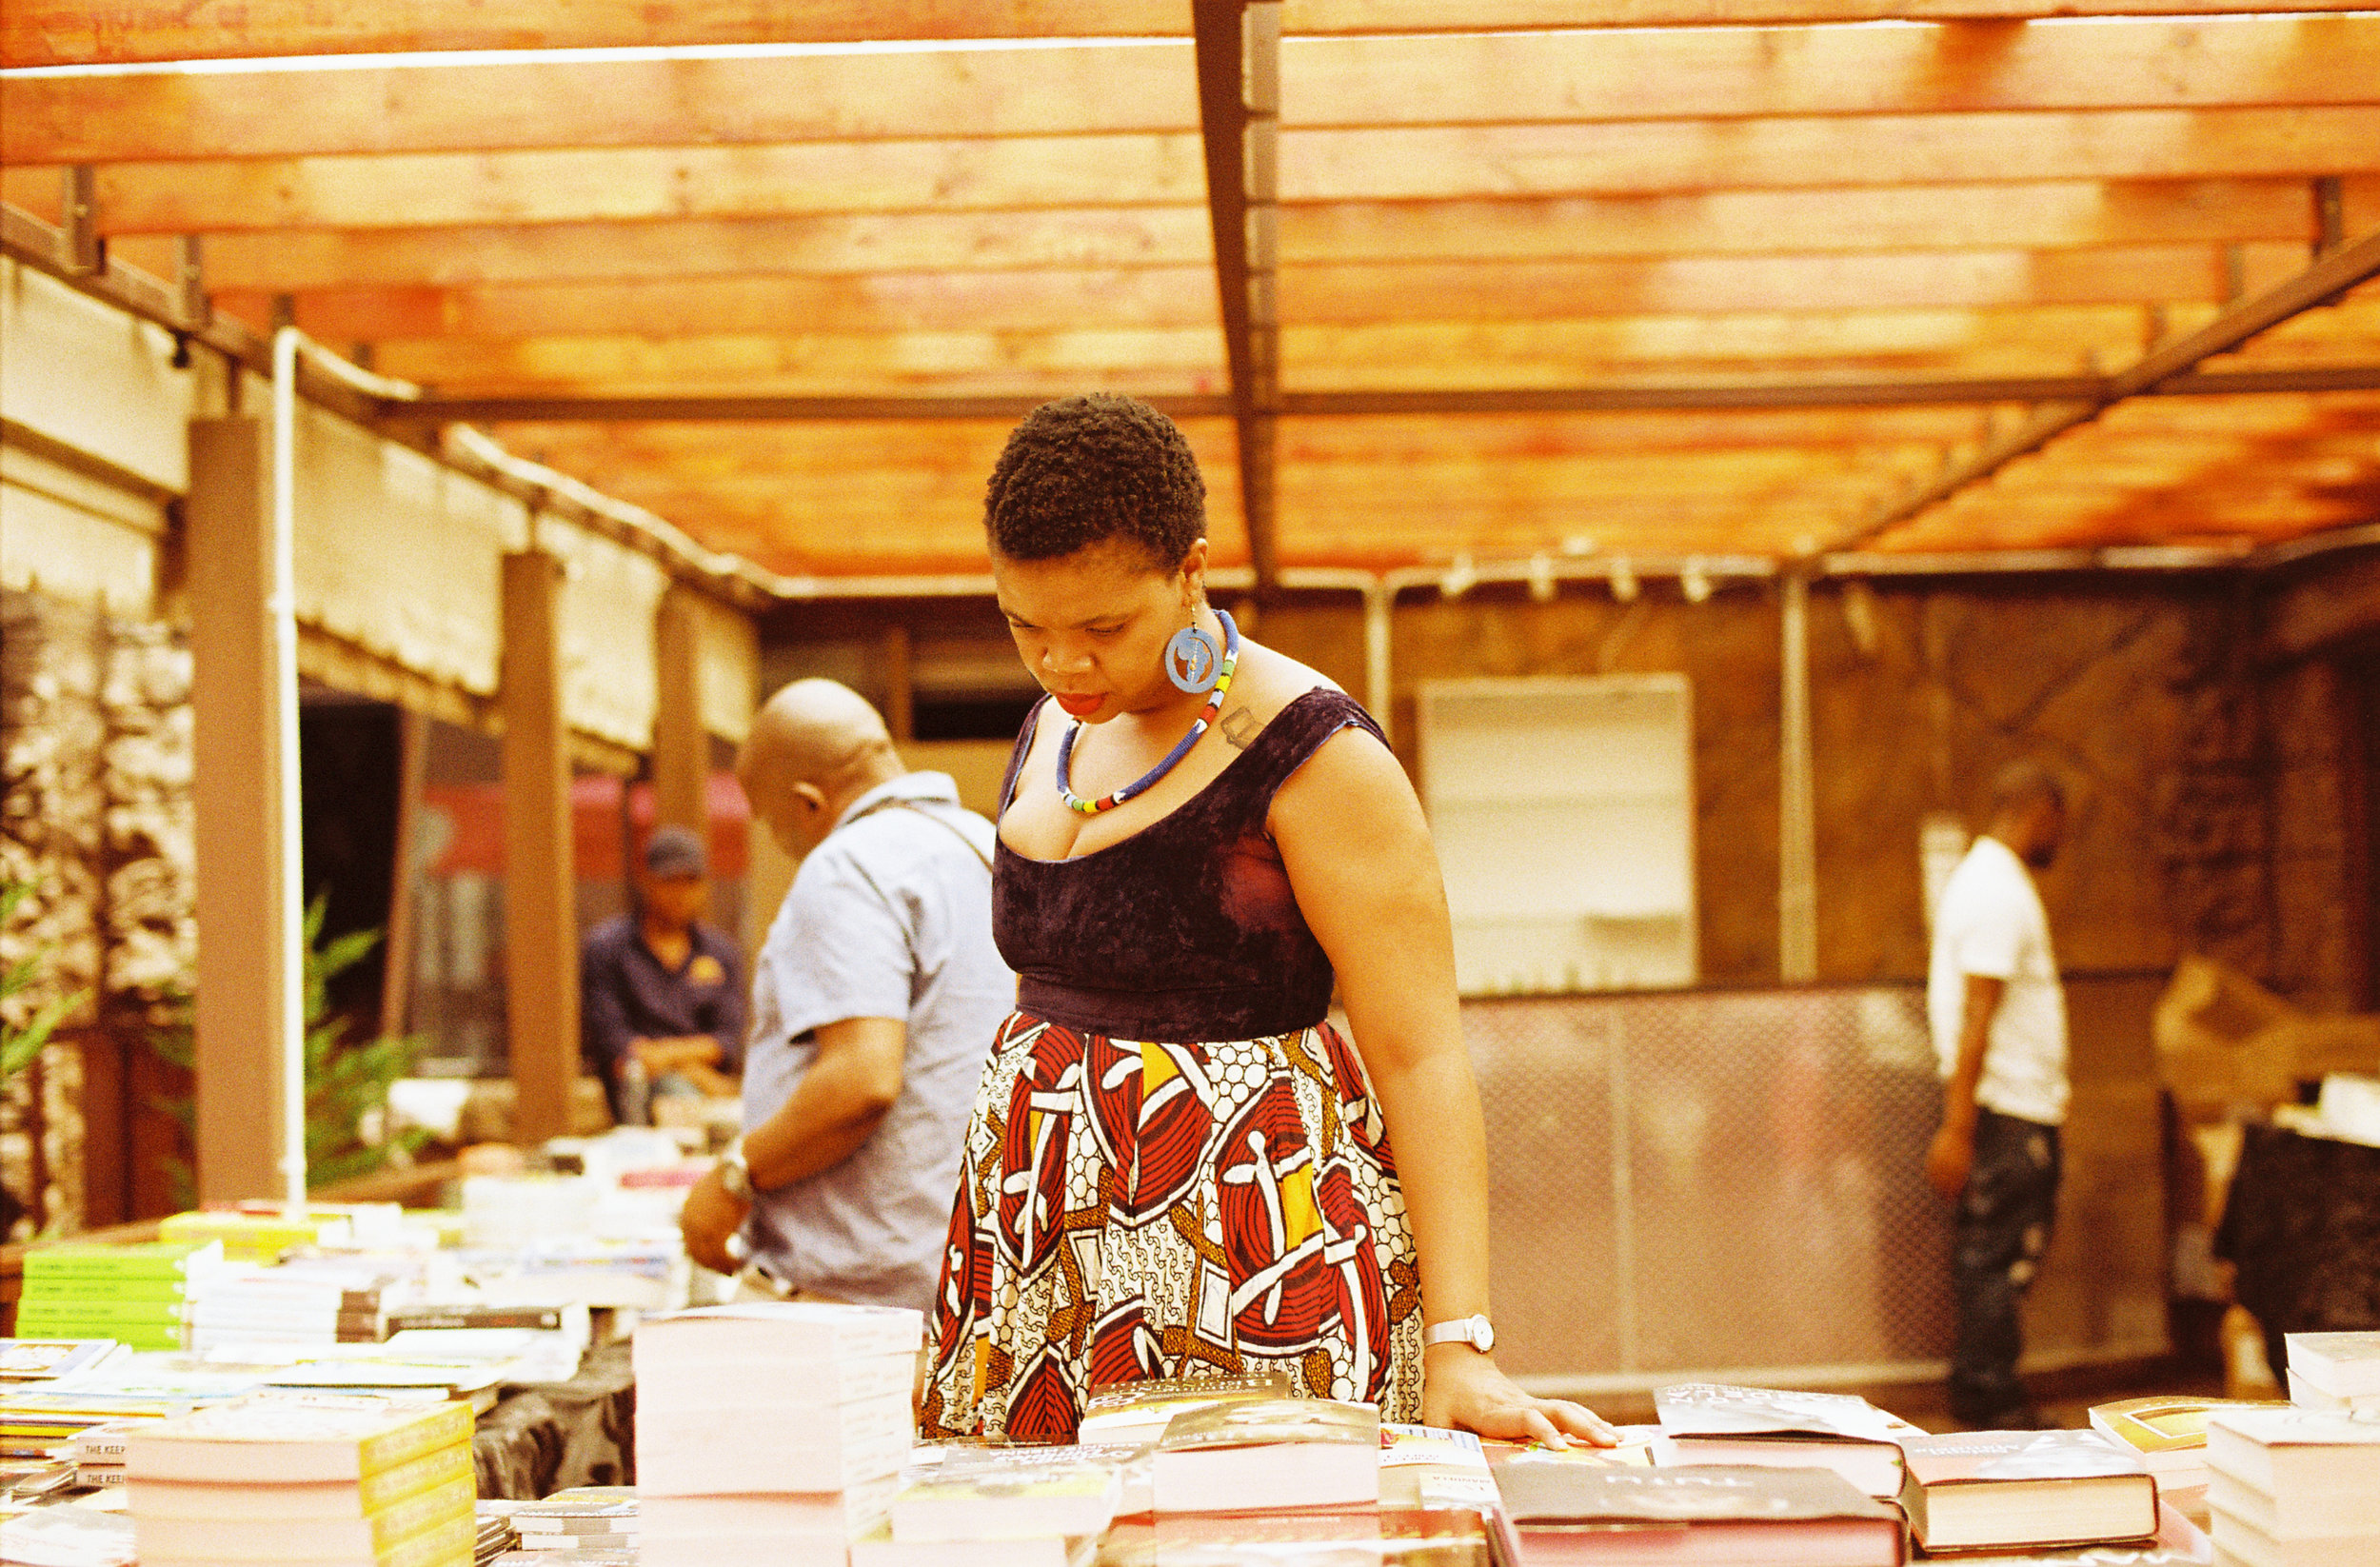 Captured at Abantu Book Festival browsing book titles, Malebo Sephodi. Photo credit: Lidudumalingani